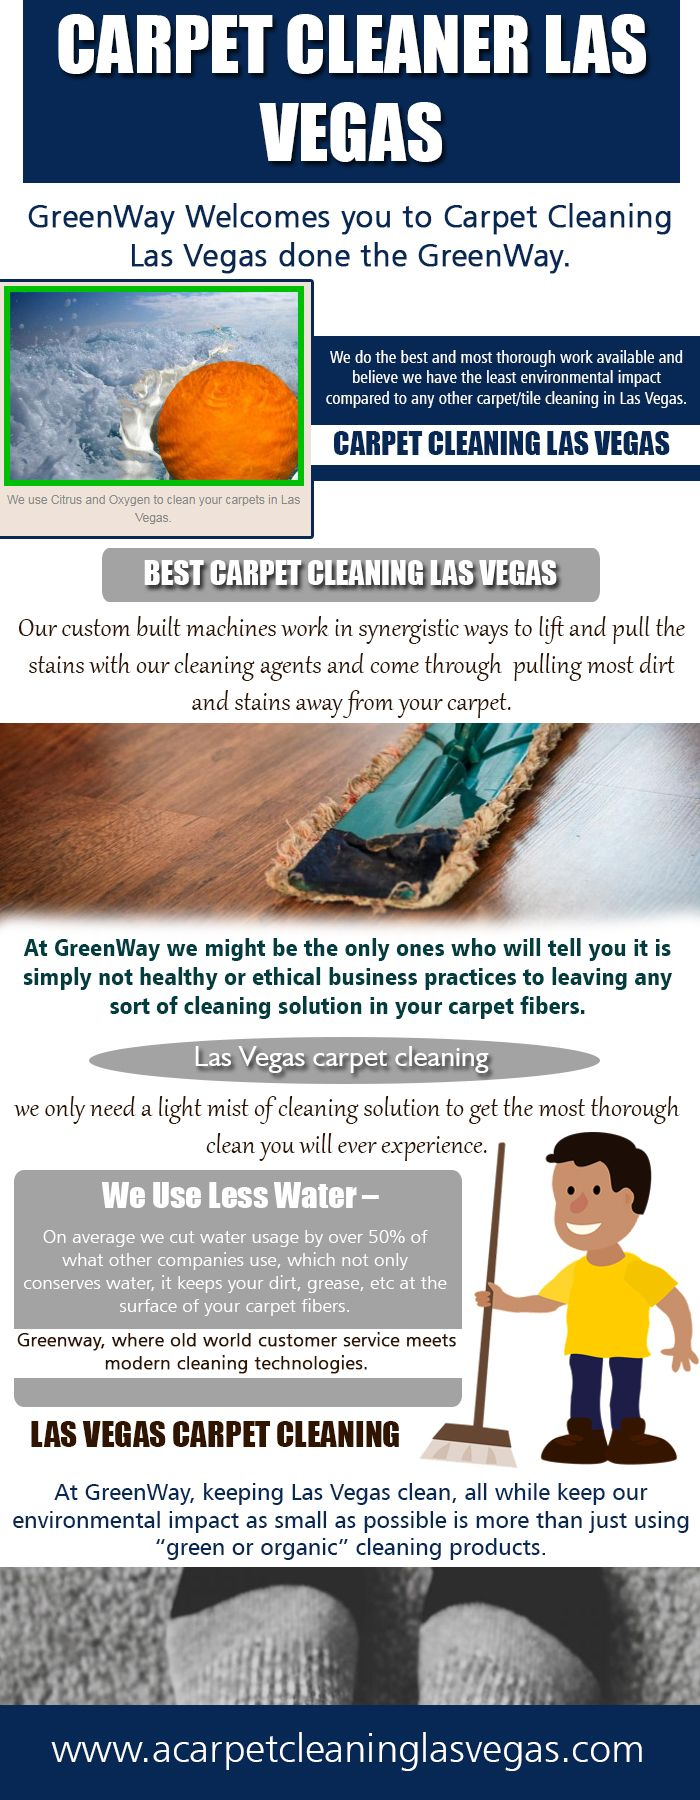 Our Site: https://www.acarpetcleaninglasvegas.com/ Carpets can add a lot of beauty to your home when kept clean and fresh. Cleaning is always a tough job. There are several models of cleaner machines available today. But cleaning becomes easier with the help of a cleaner. Hiring Carpet Cleaner Las Vegas makes the work simple. Cleaners use cleaning solutions to clean the stains, dirt, and pet odors from household carpets. Hiring a cleaner basically depends on the amount of stains in the…